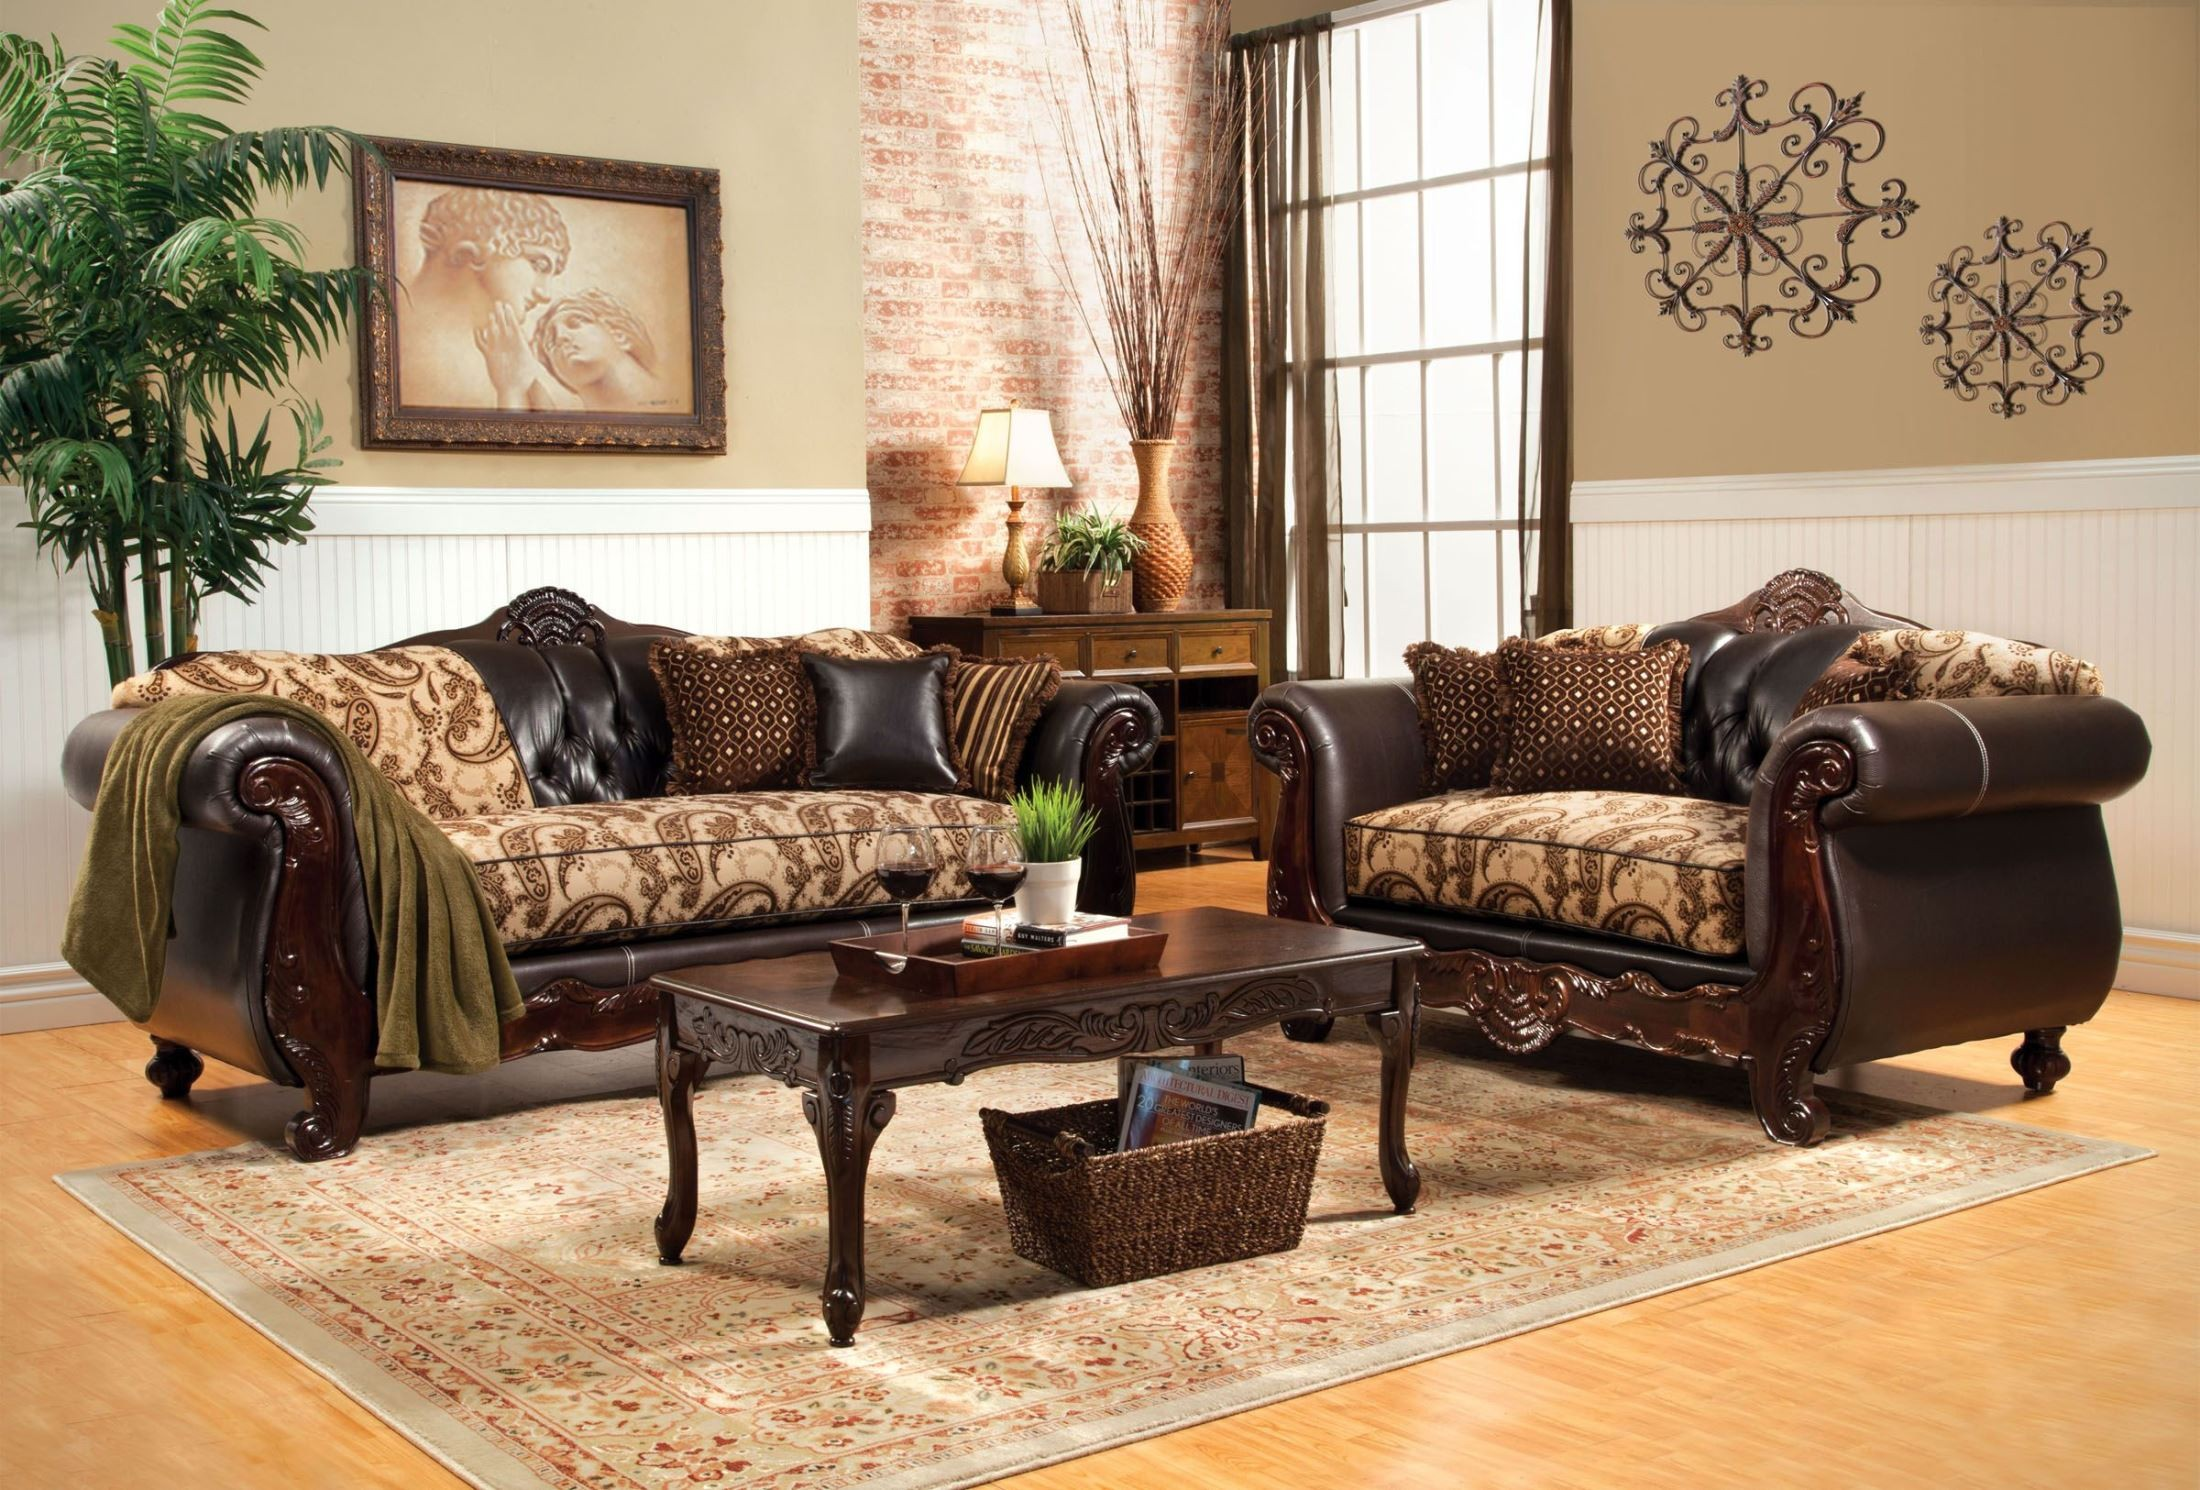 Bonaparte Floral Fabric And Leatherette Living Room Set From Furniture Of Ame